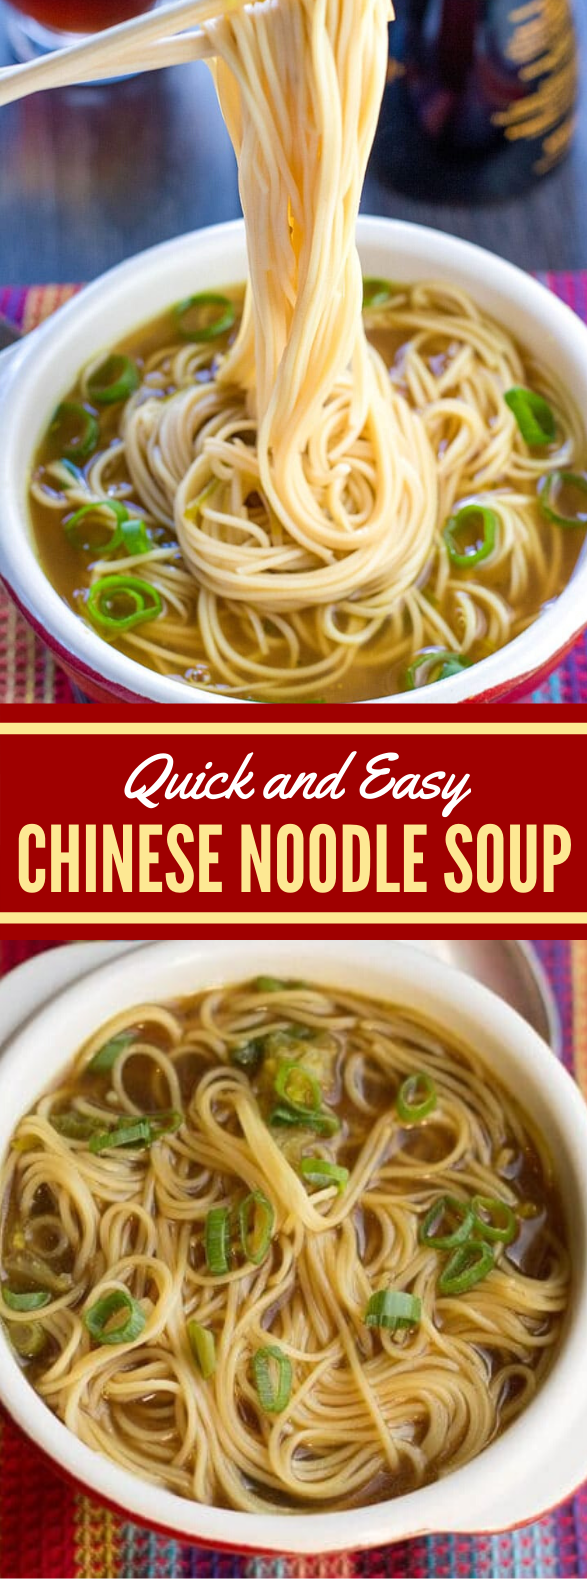 Quick & Easy Chinese Noodle Soup #dinner #lunch